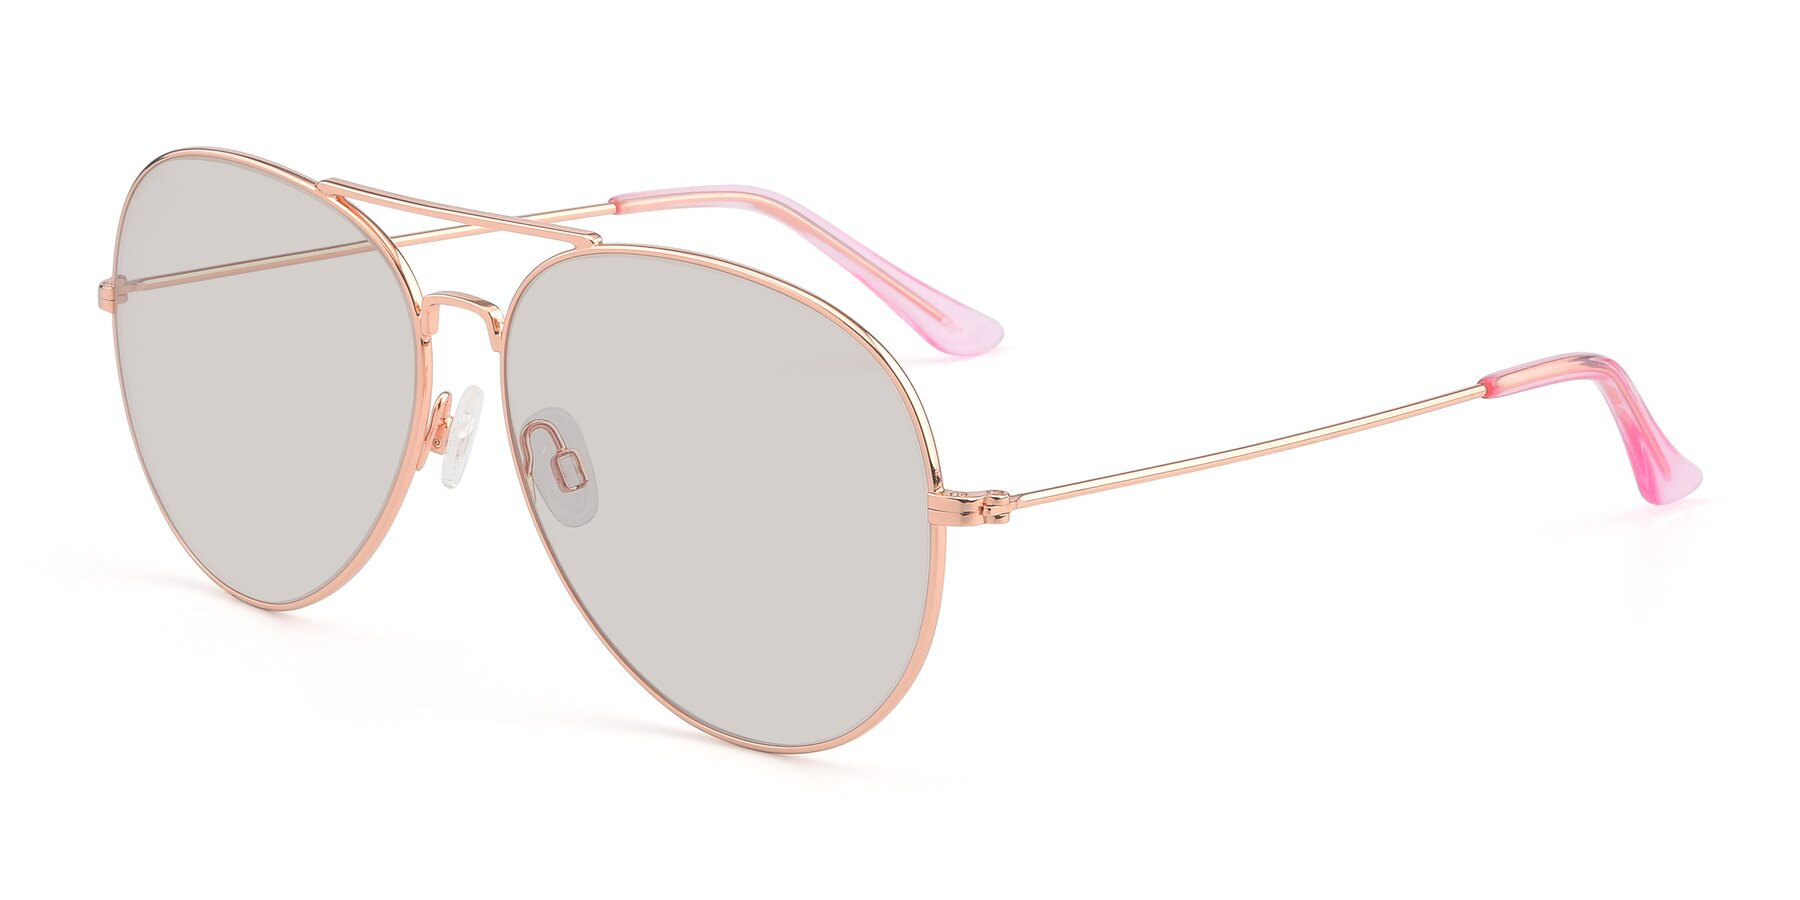 Angle of Paradise in Rose Glod with Light Brown Tinted Lenses